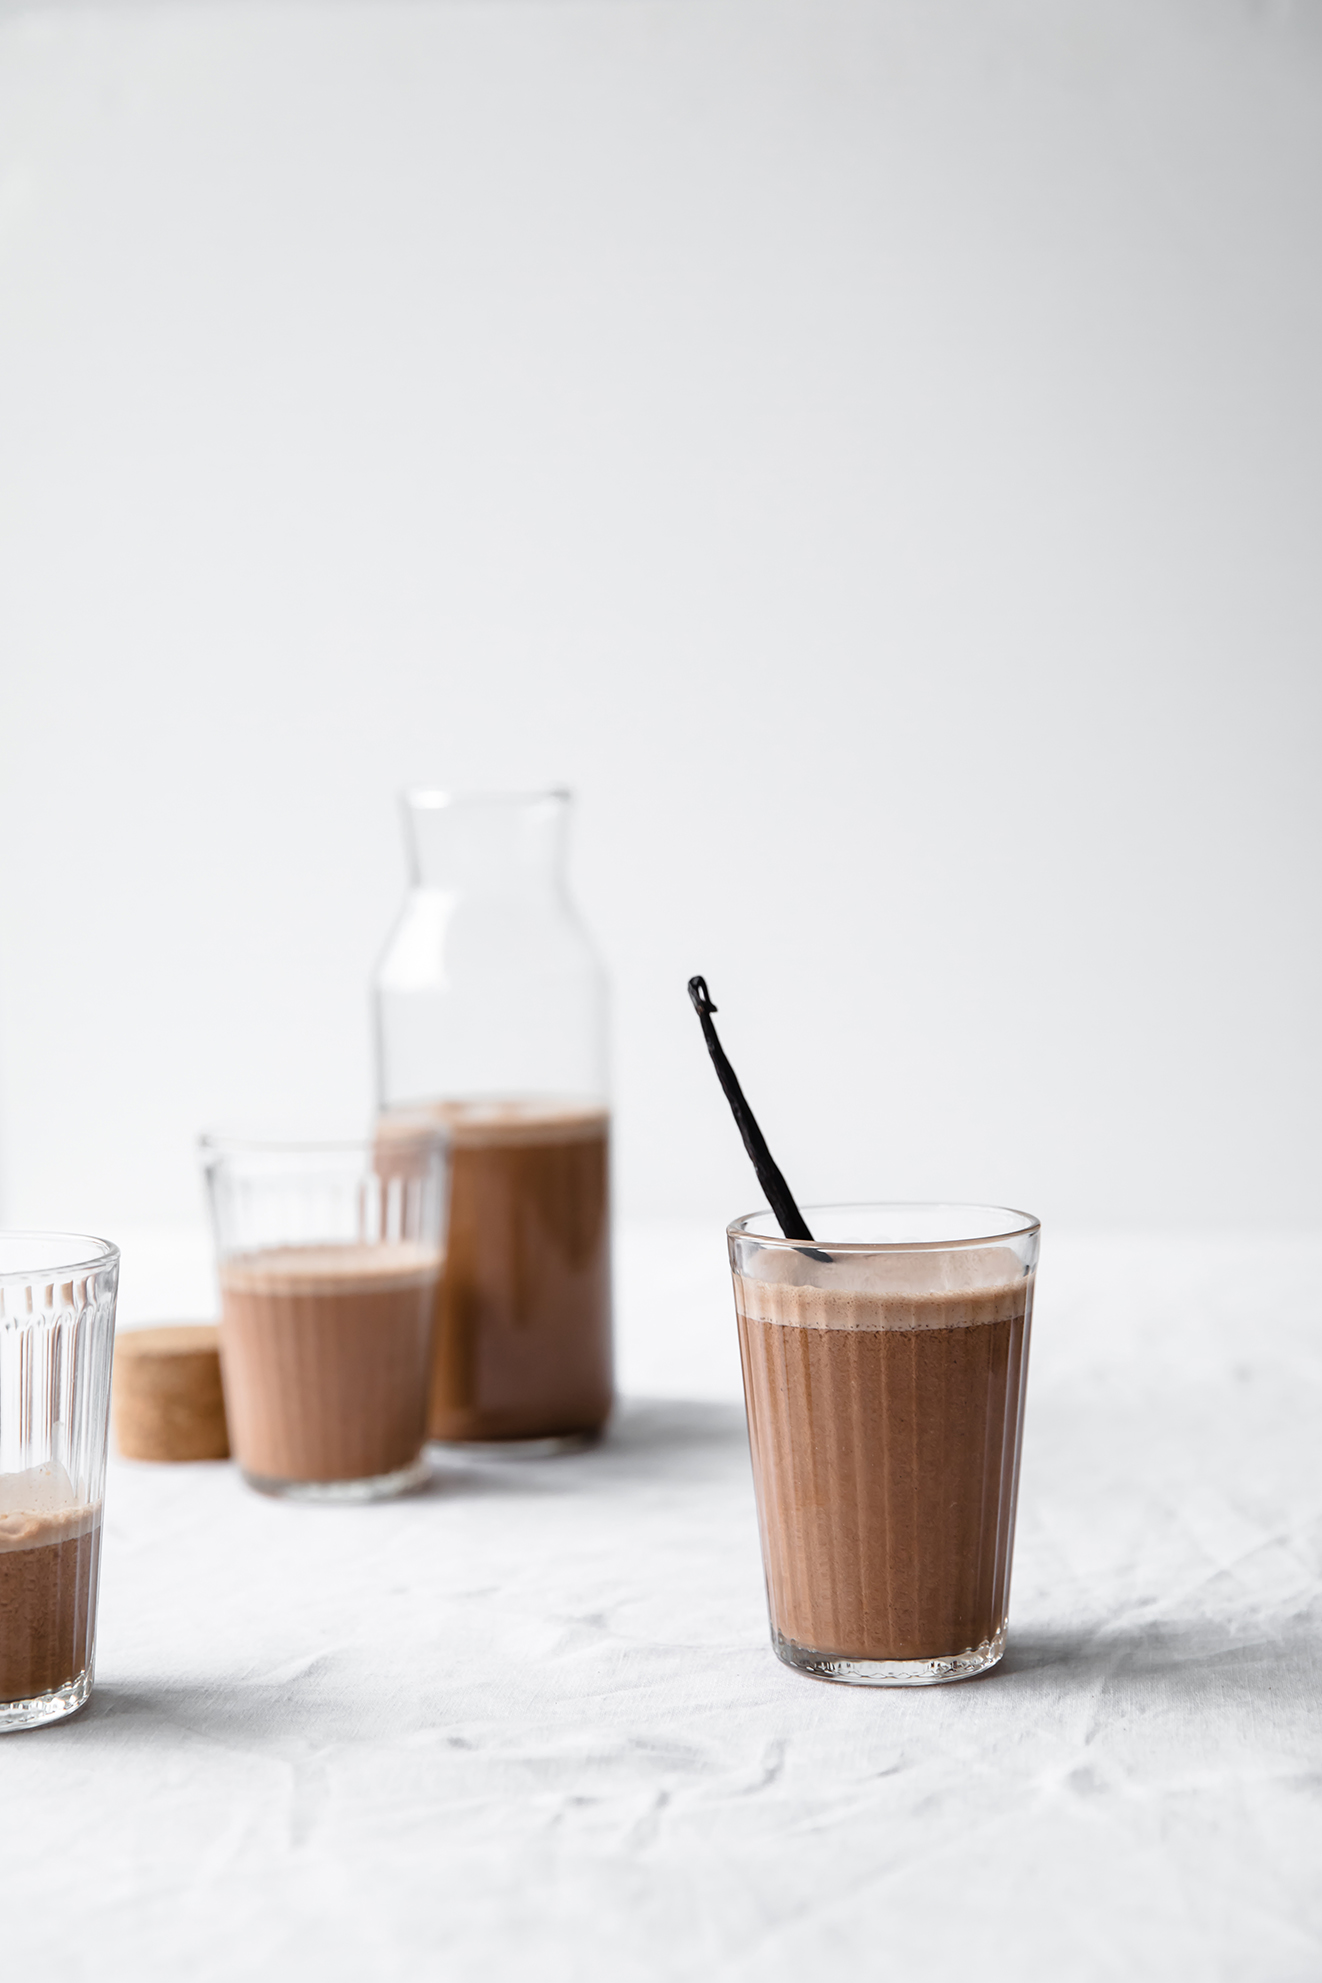 chocolate mylk, chocolate collagen almond mylk, vegan chocolate mylk, food photography, Modern Food Stories, London food photographer